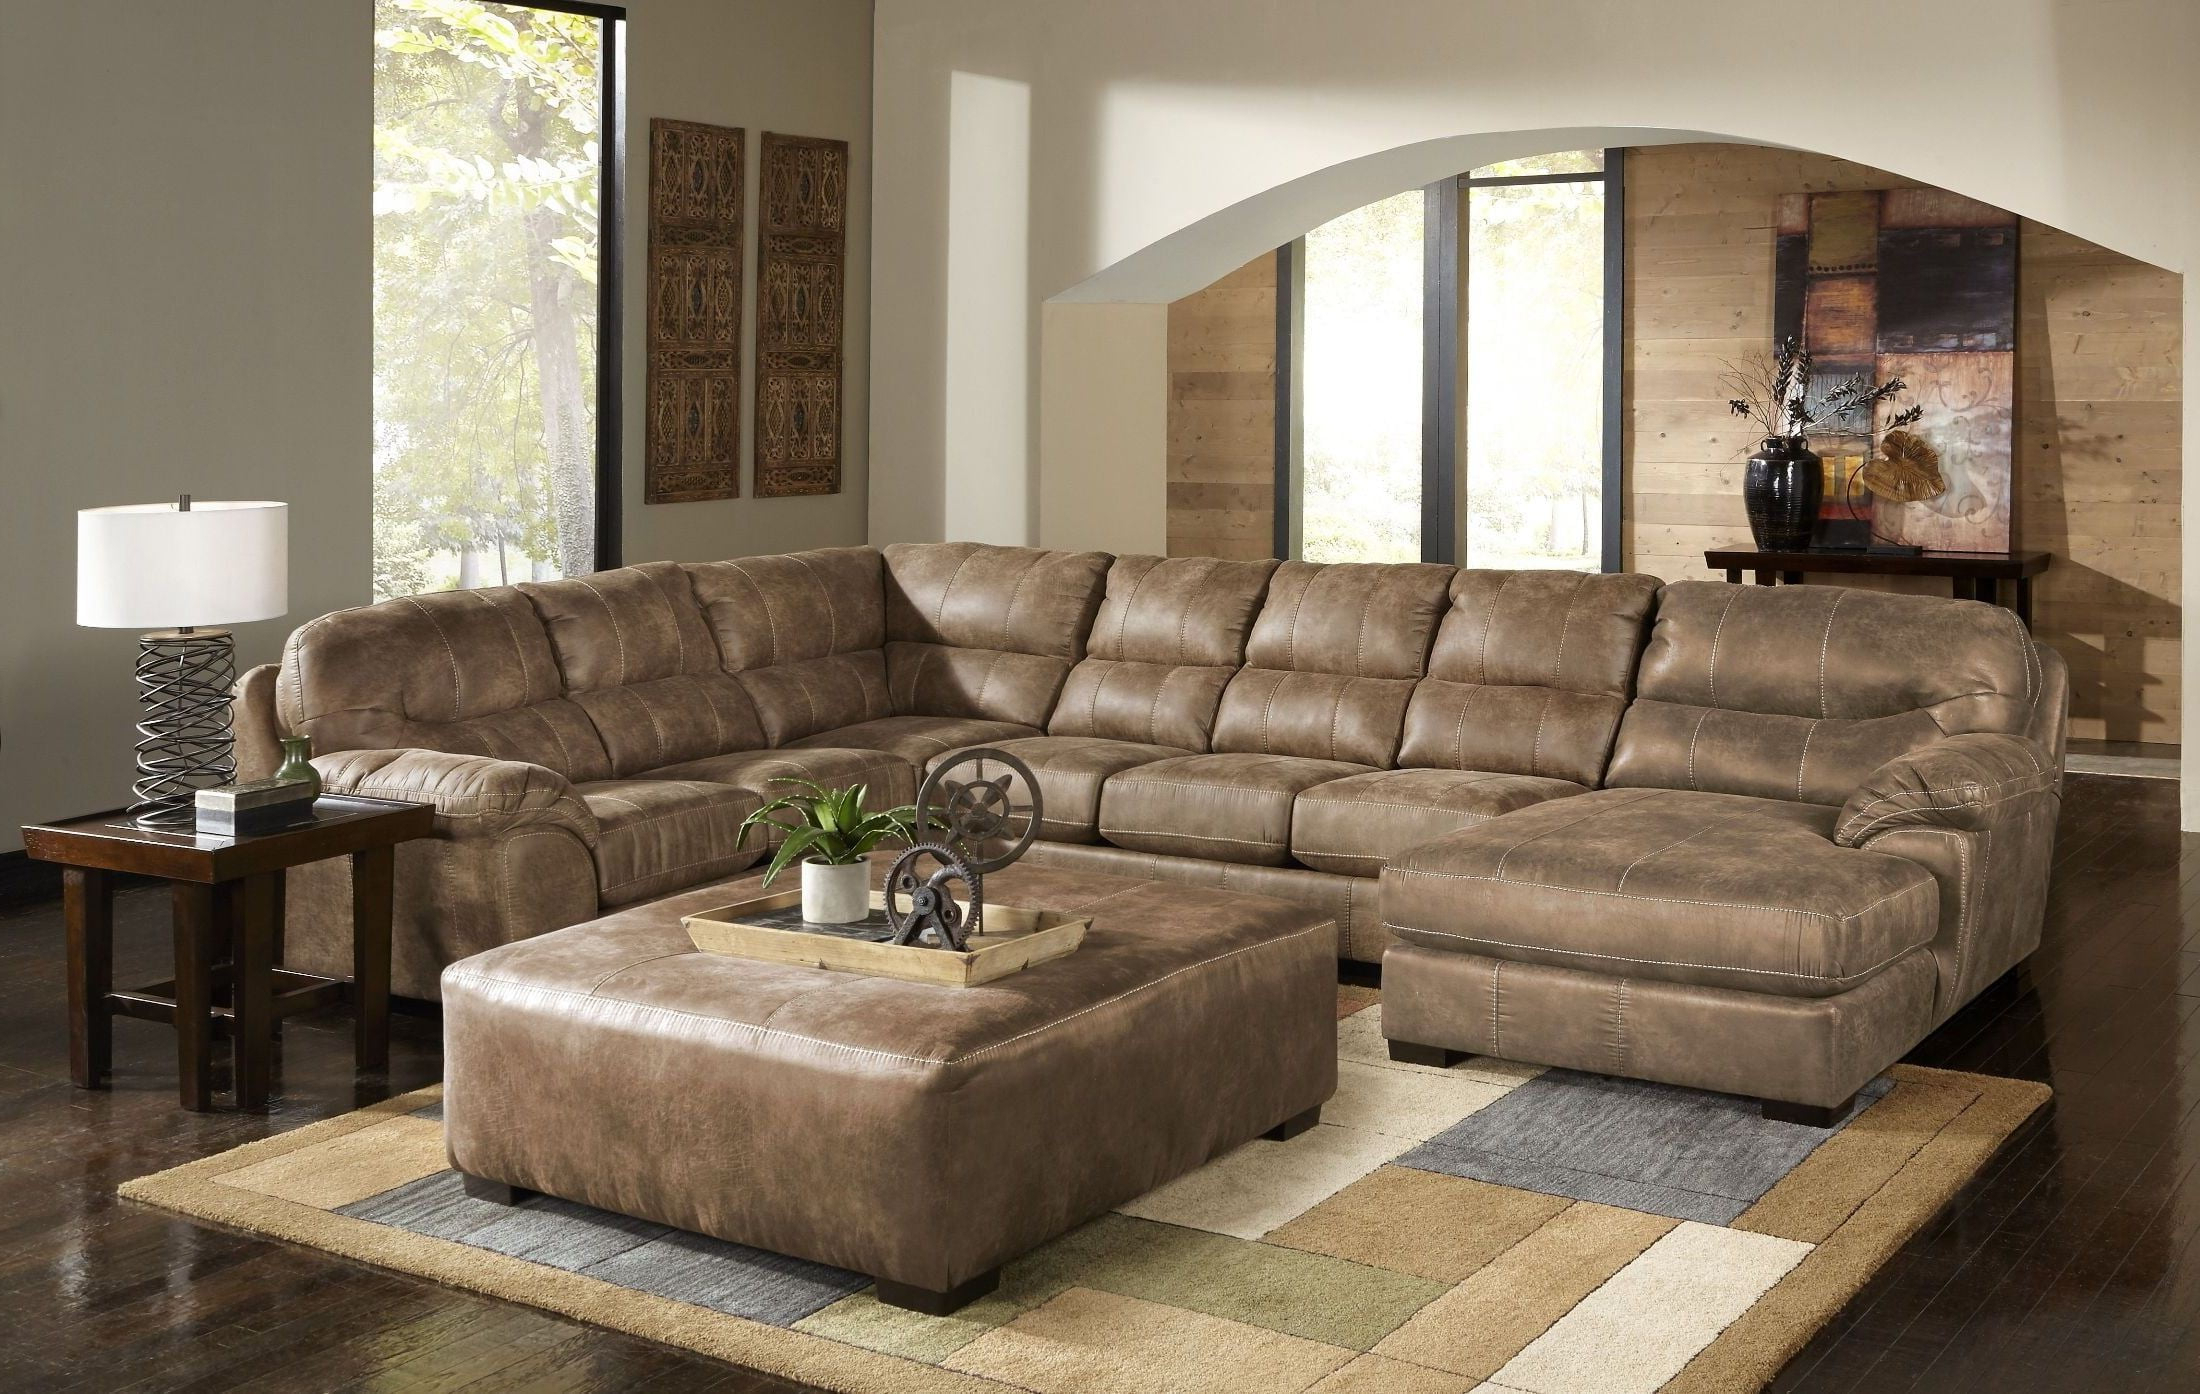 Avery 2 Piece Sectionals With Raf Armless Chaise Intended For Most Recent Grant Silt Laf Chaise Sectional, 4453 75 122749302749, Jackson (View 5 of 20)